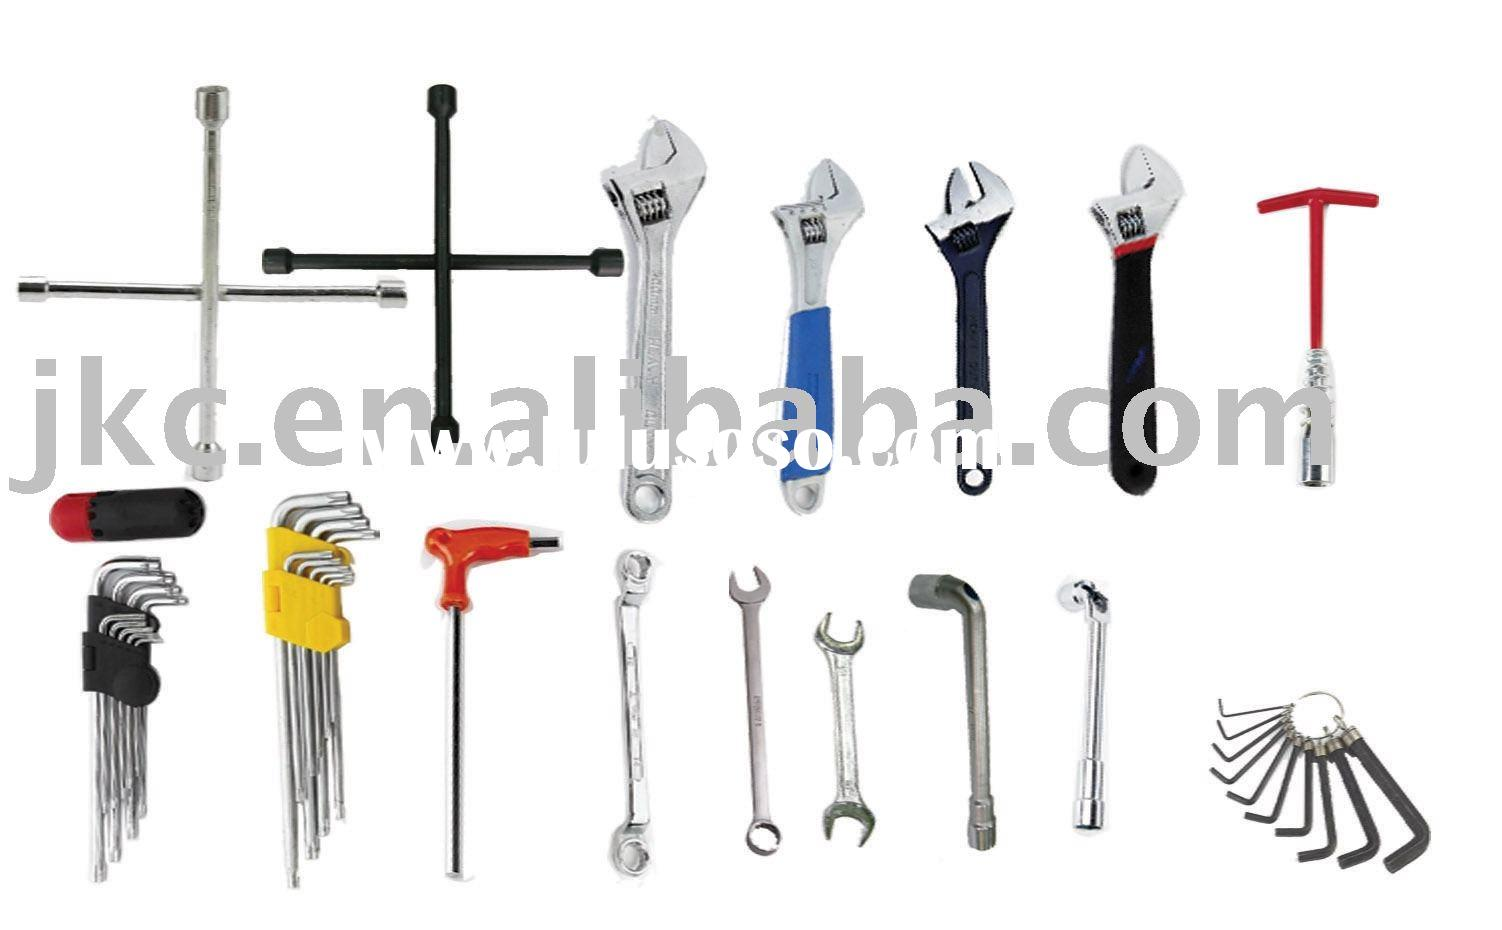 wrench, Cross spanner, Adjustable wrench, Spark plug Spanner